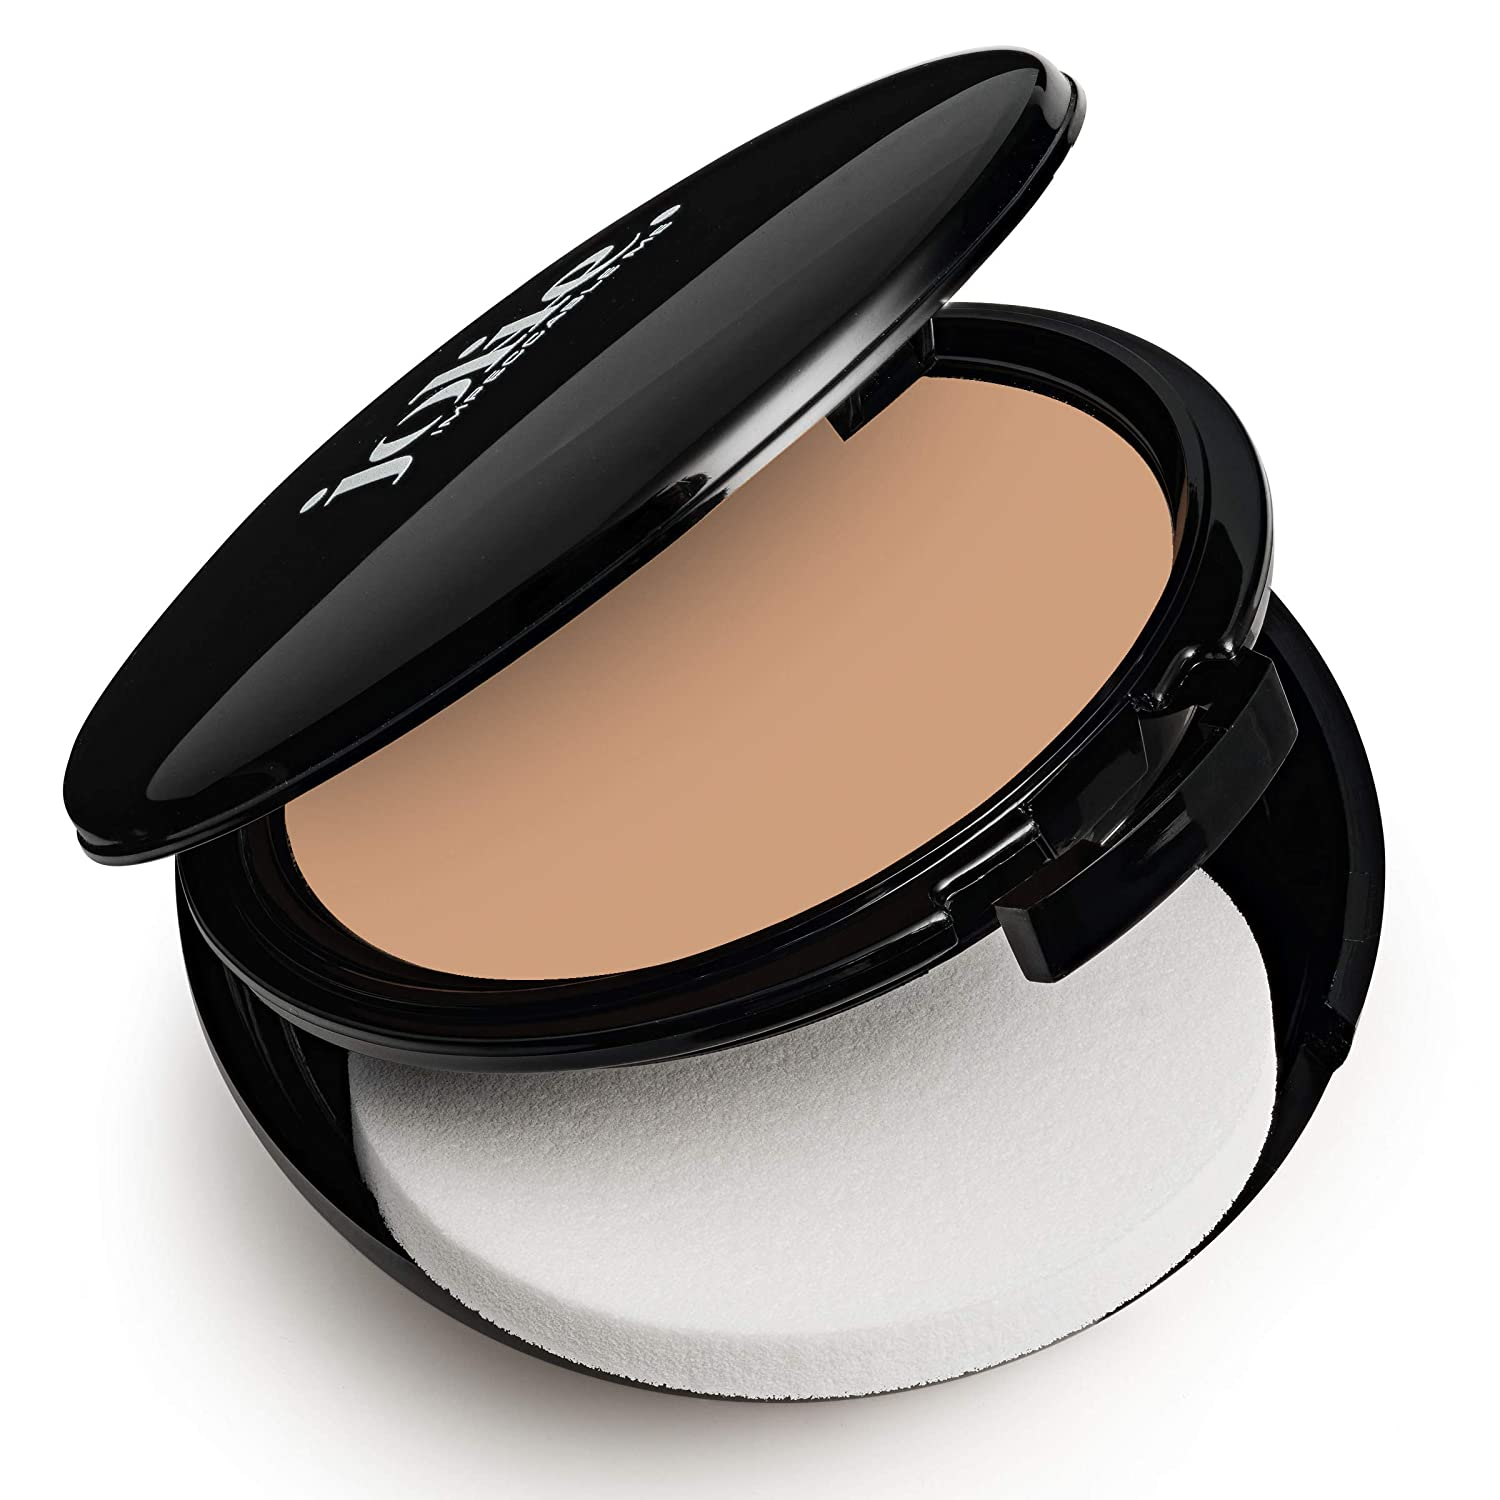 Limited time sale Creme Foundation SPF-15 Full Coverage W Makeup Soft Natu NEW before selling Sponge